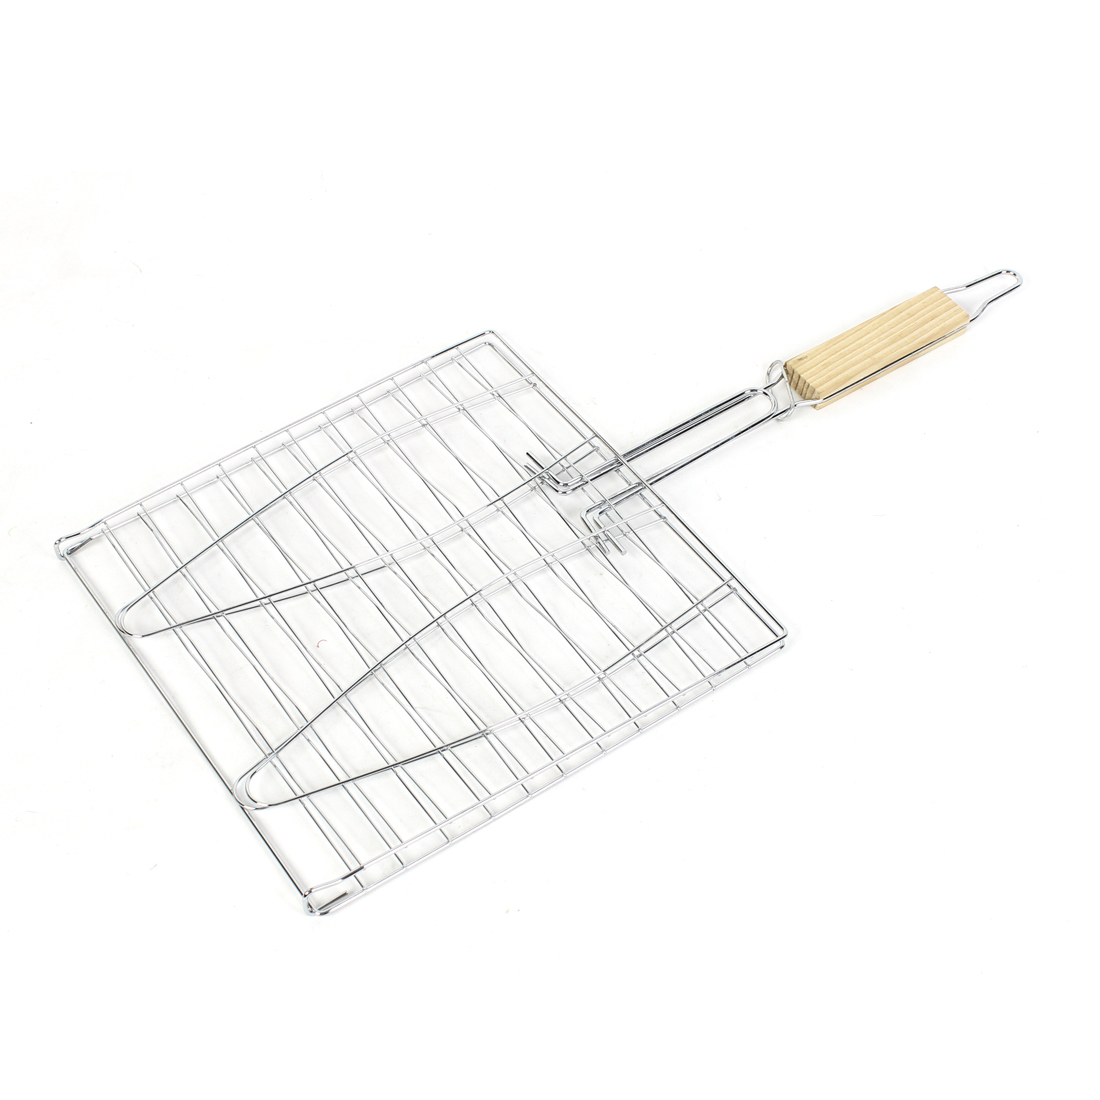 Picnic BBQ Barbecue Wooden Handle Stailess Steel Fish Stock Grilling Basket